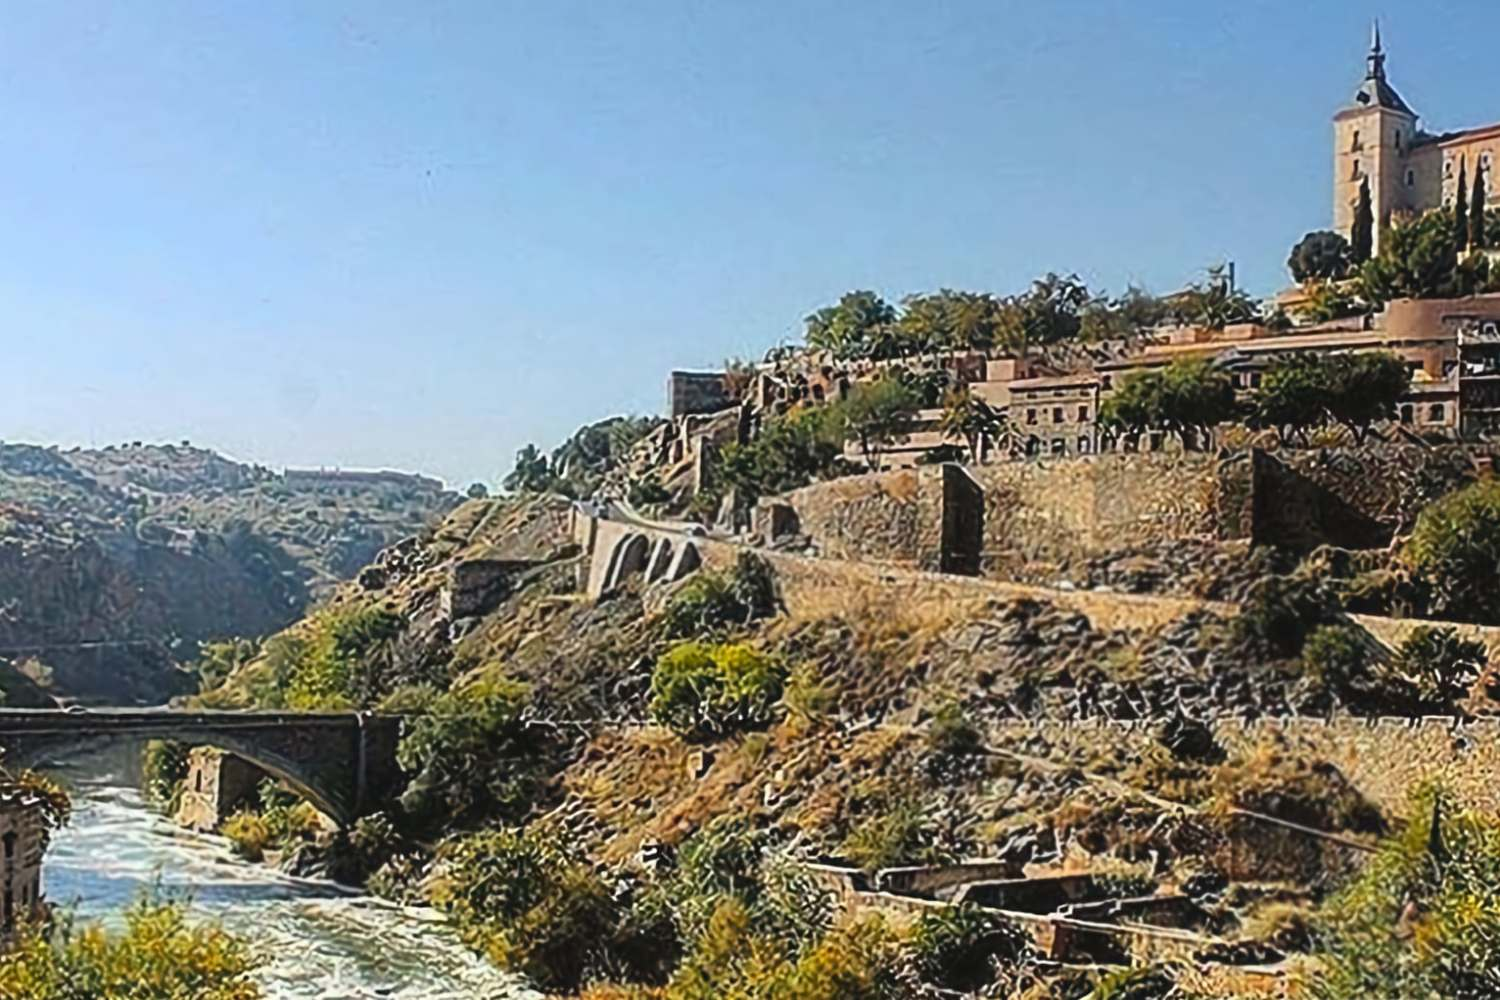 A view of old Toledo